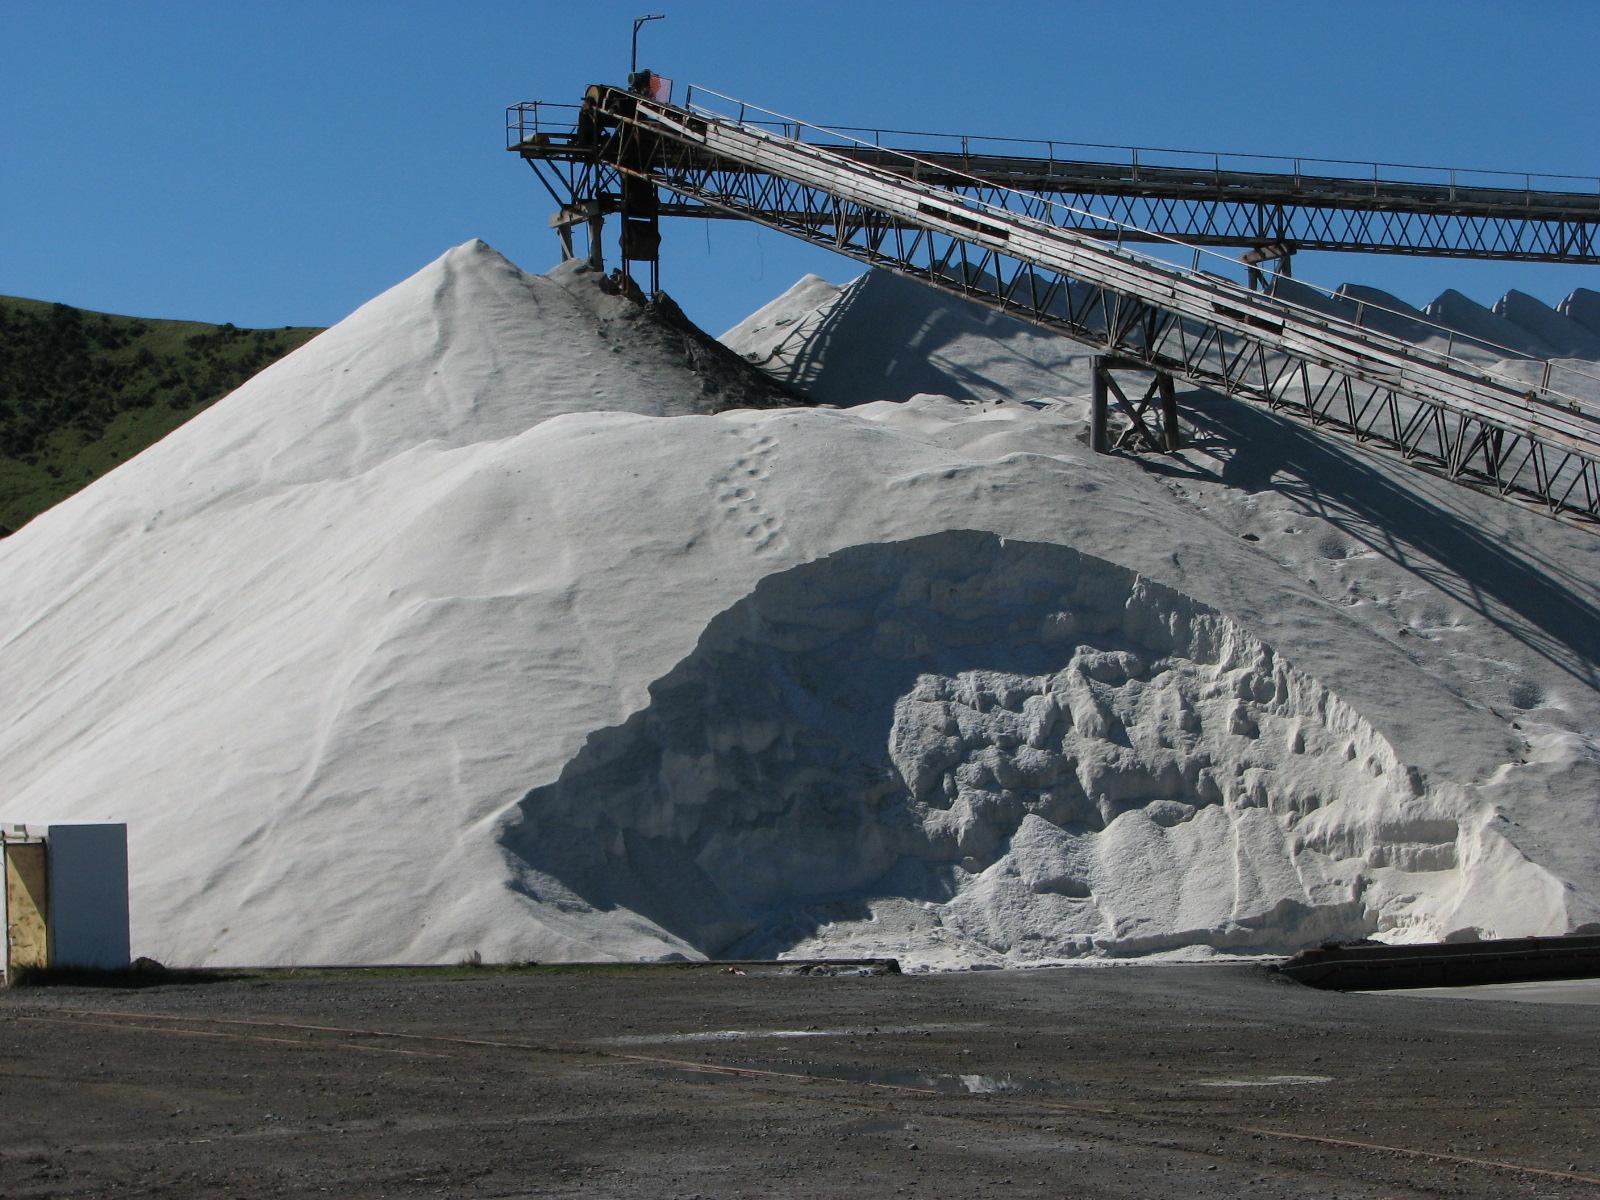 It is hard to imagine that you are looking at mountains of salt, but these small hills are salt at Lake Grassmere Salt Works